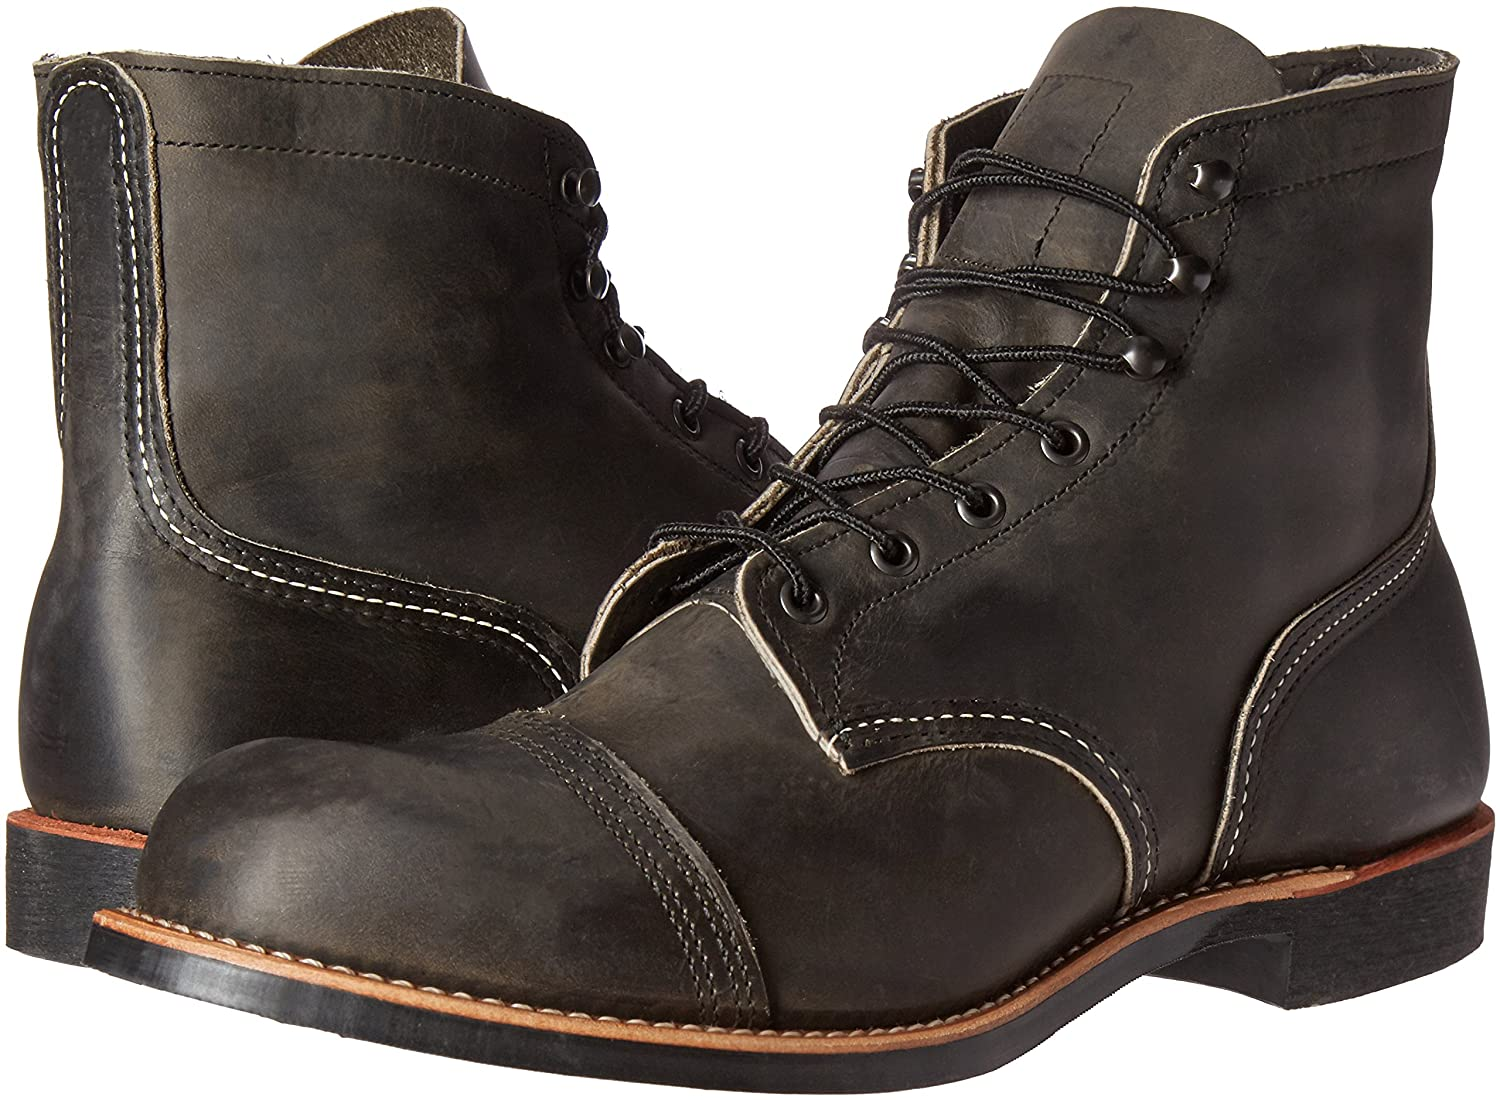 Red Wing Mens Iron Ranger 8086 Leather Boots, Charcoal, 11.5